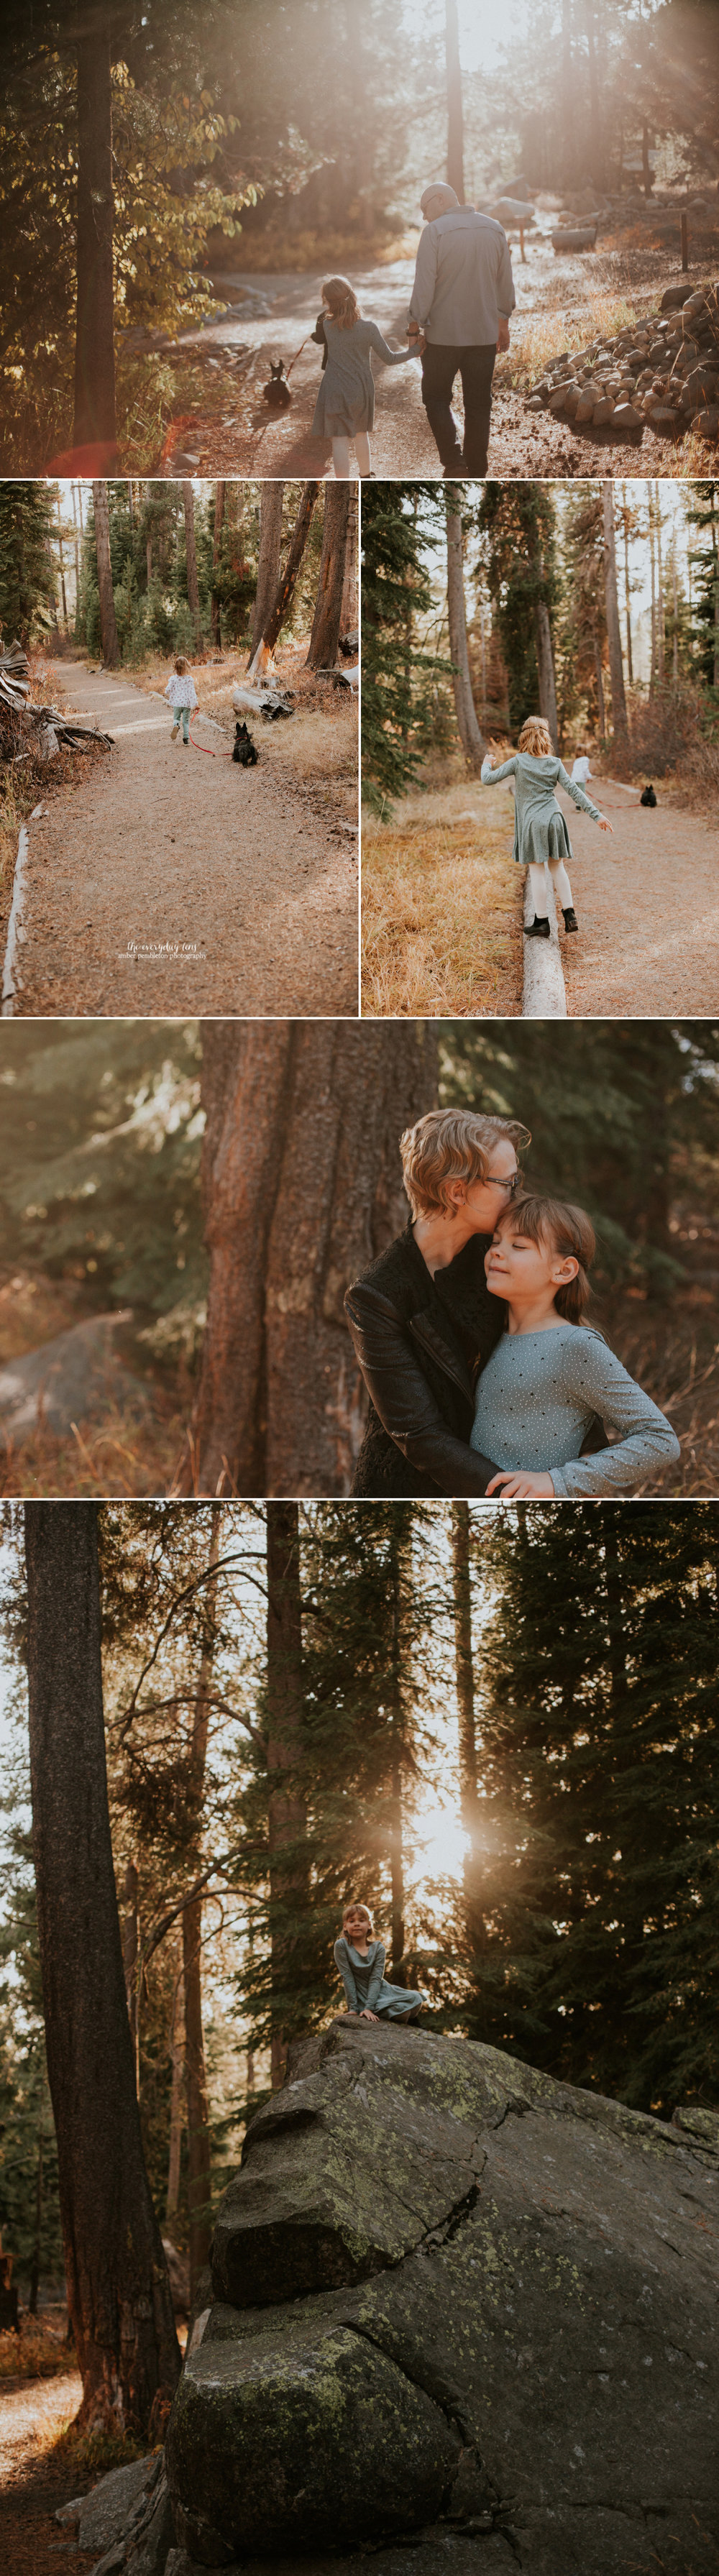 Donner-lake-family-photography.jpg